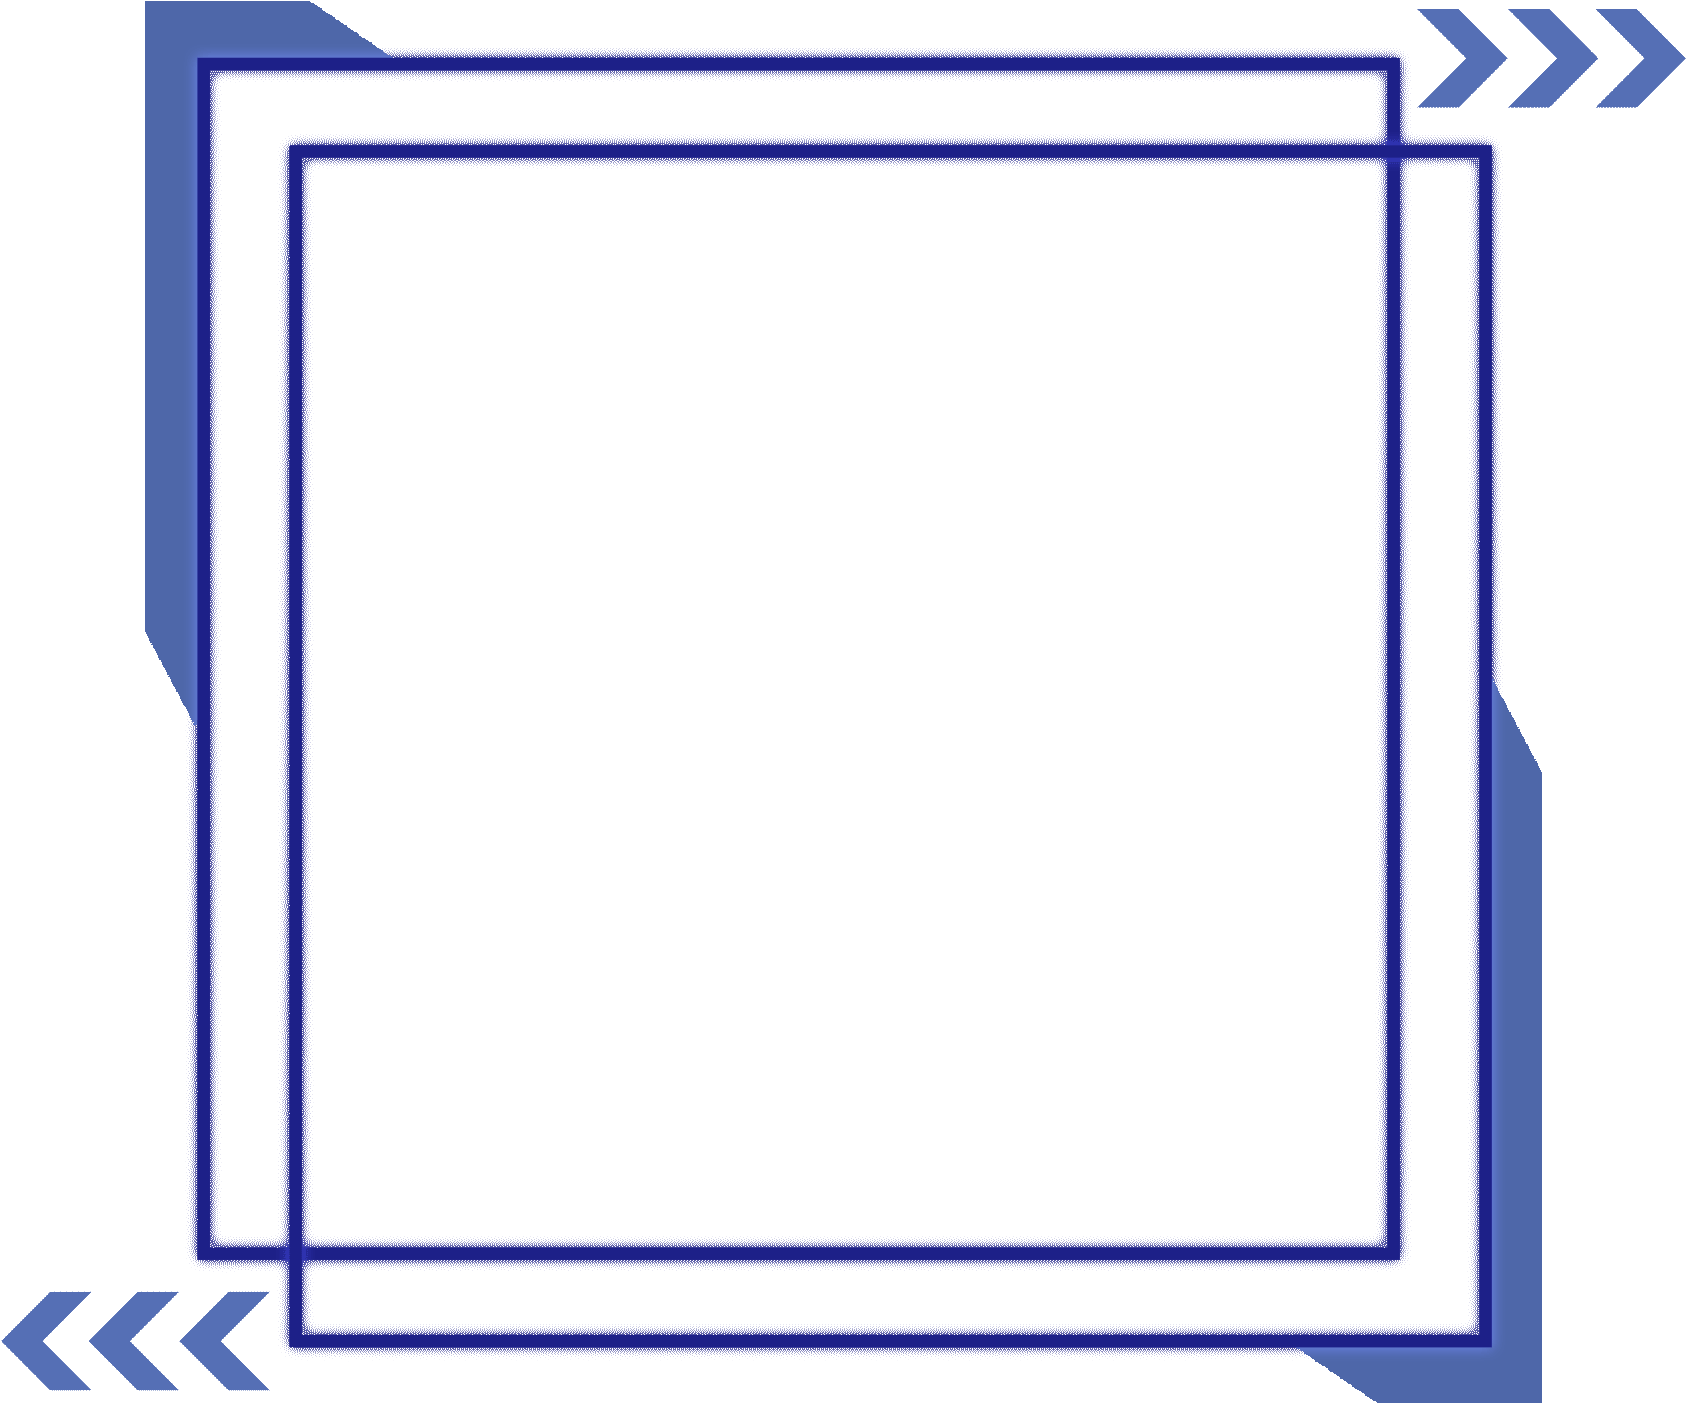 Light Blue Glowing Square Textured Border Png And.